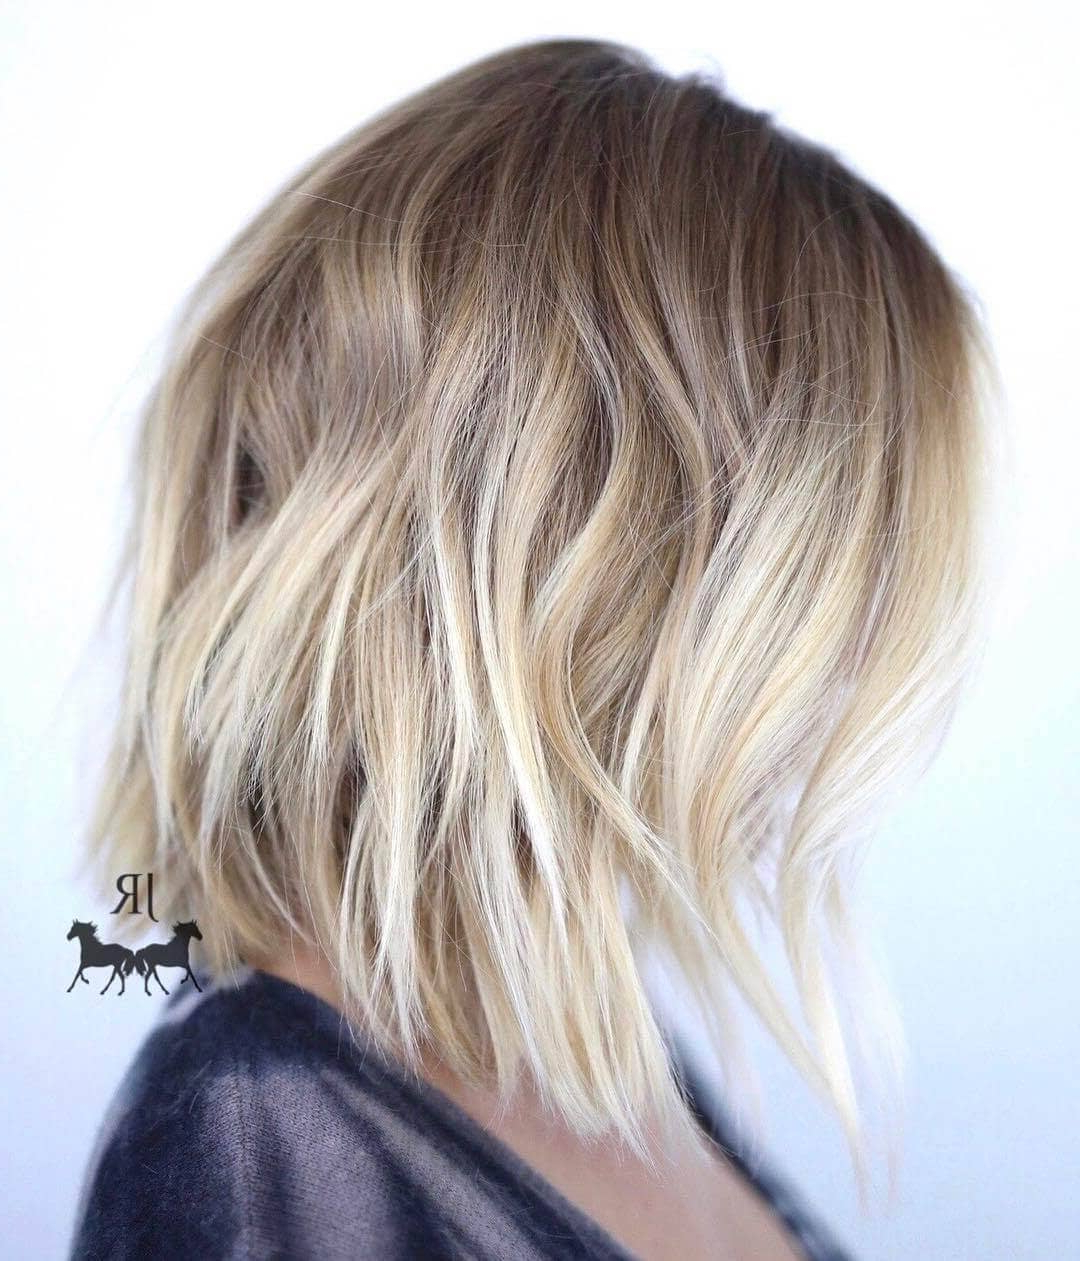 Recent Blonde Textured Haircuts With Angled Layers In 50 Fresh Short Blonde Hair Ideas To Update Your Style In 2019 (Gallery 3 of 20)